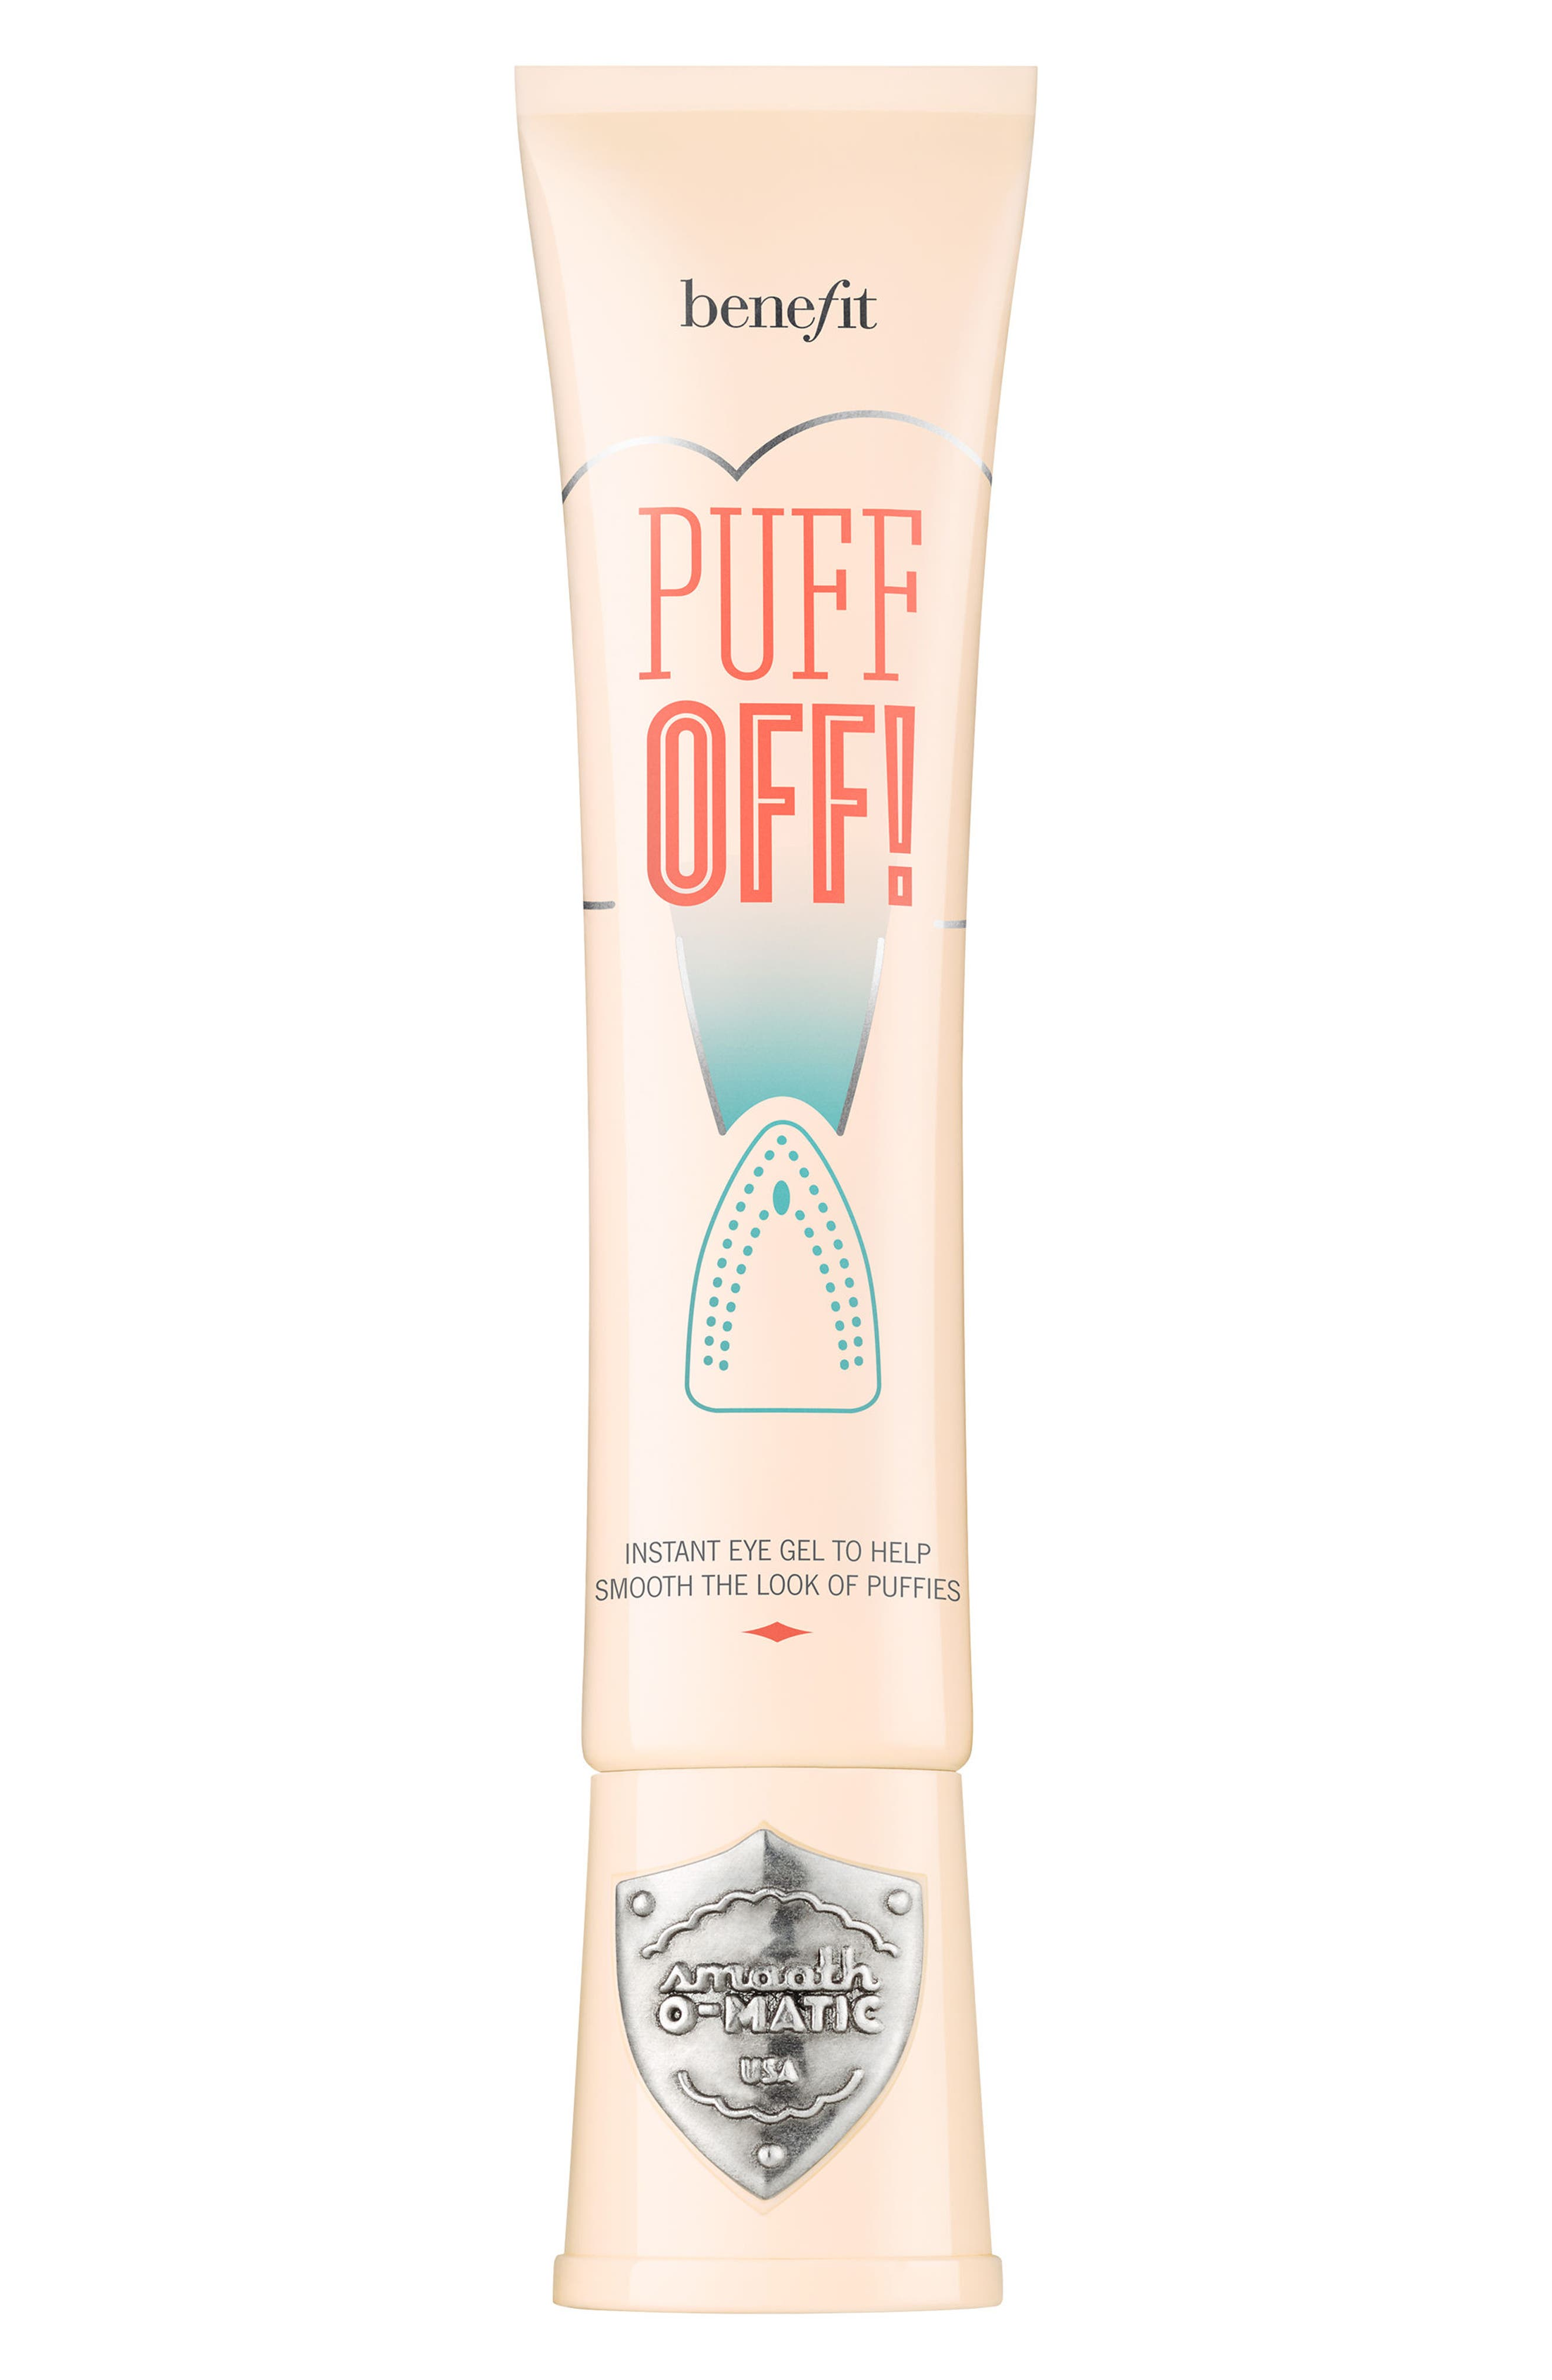 Benefit Puff Off! Under Eye Gel,                             Alternate thumbnail 3, color,                             No Color